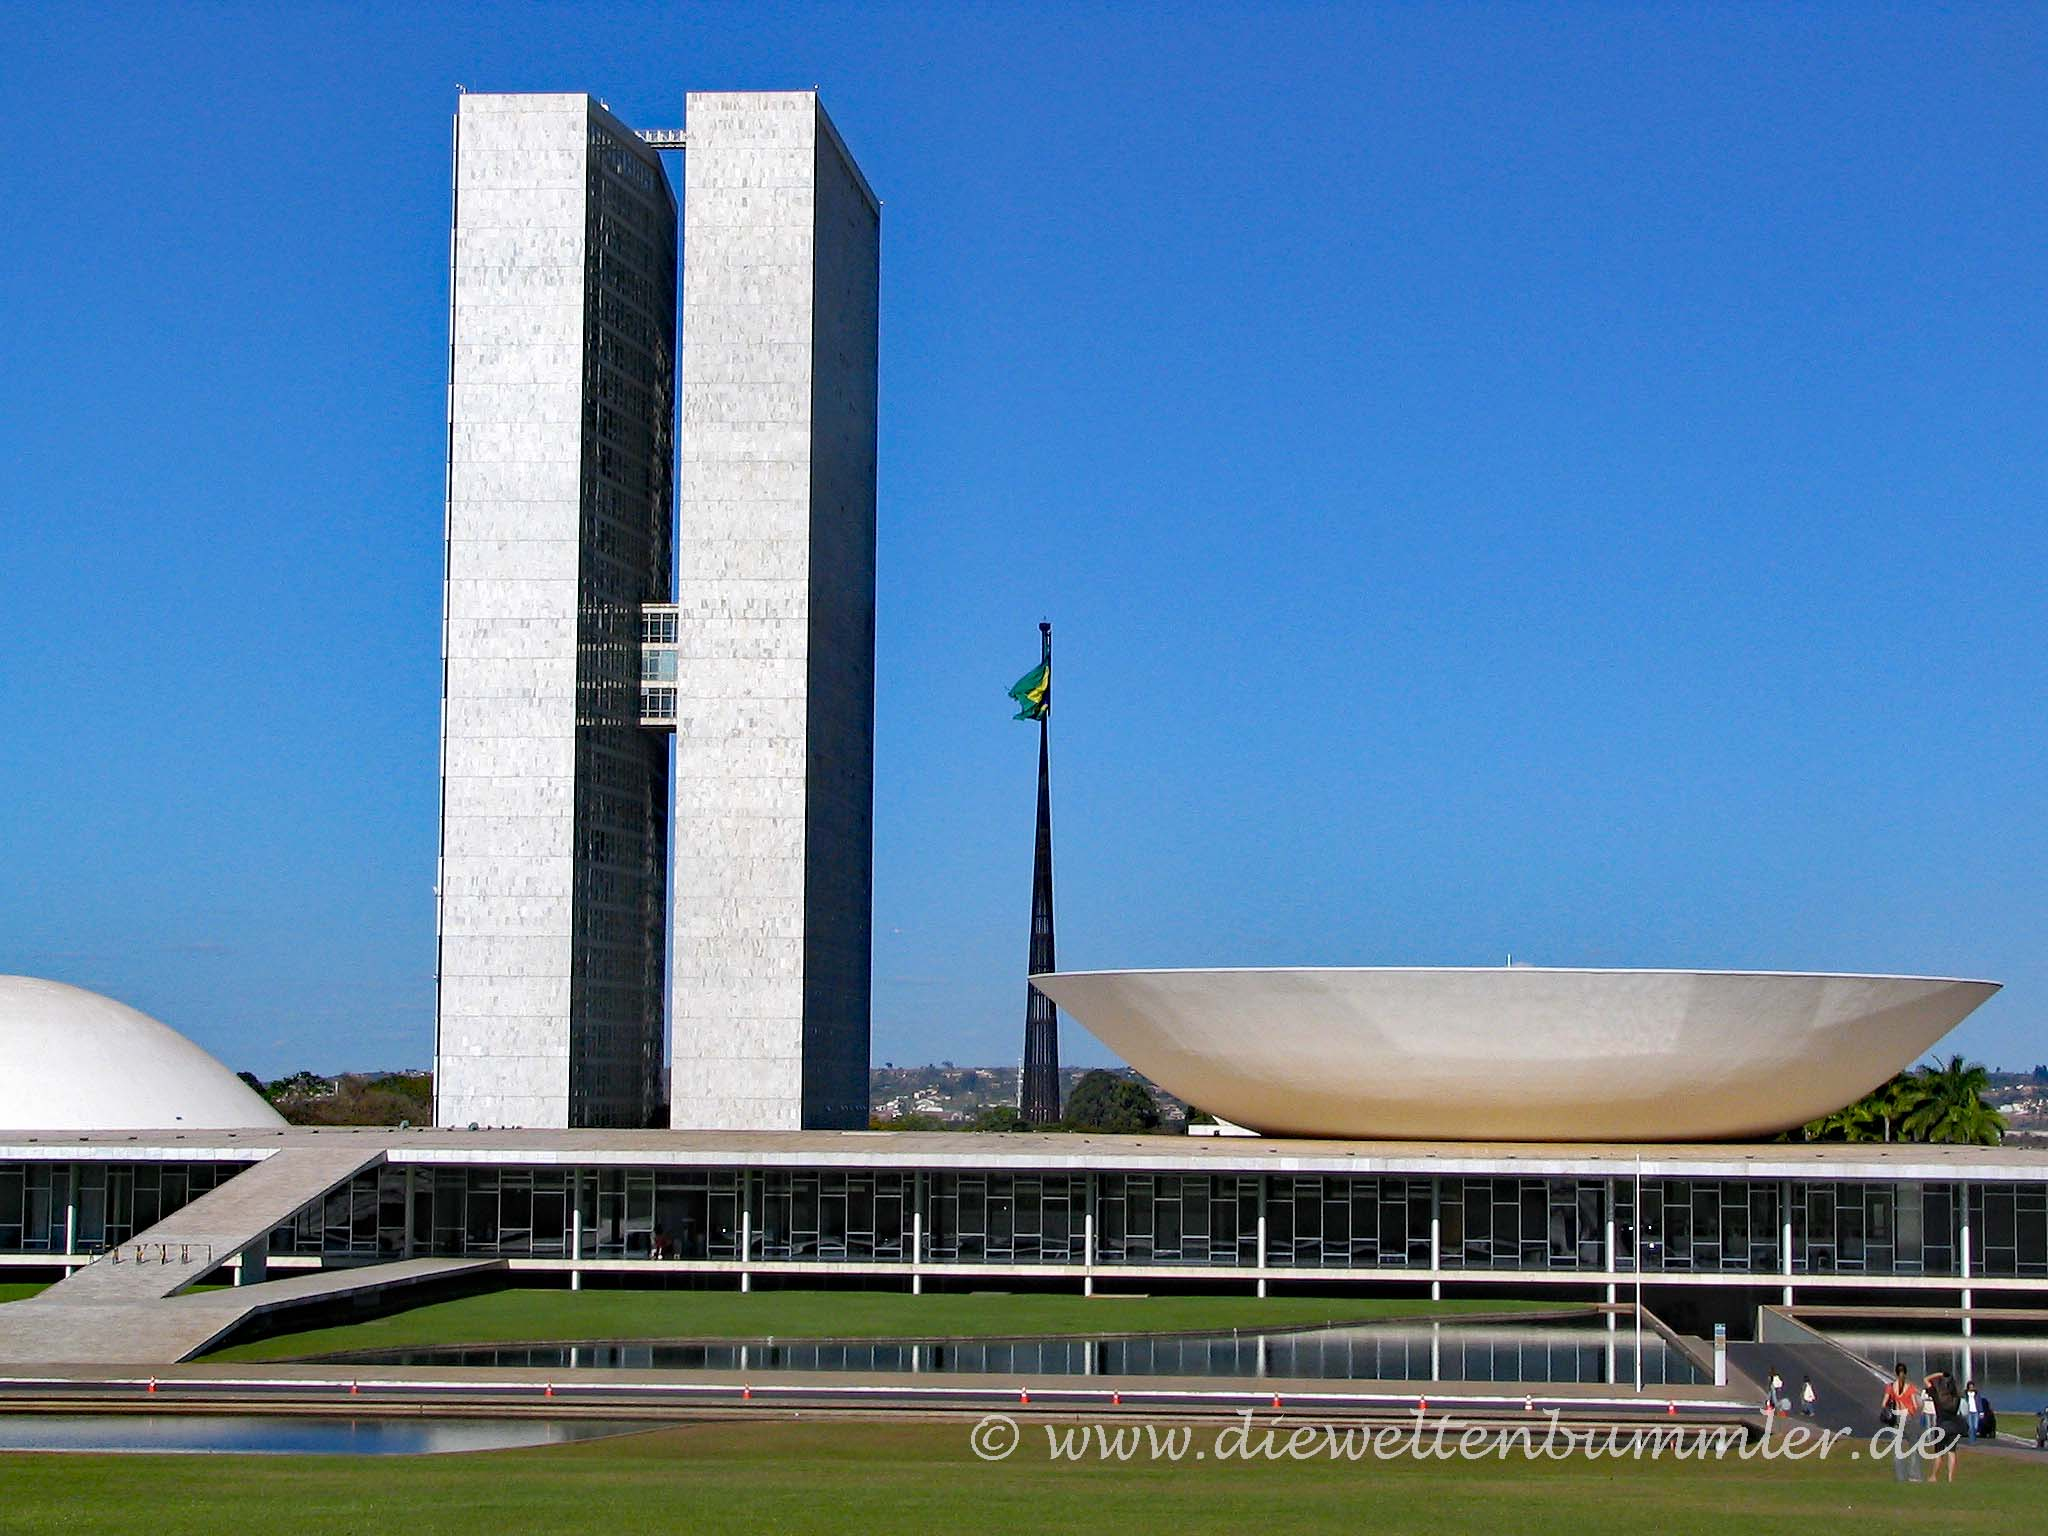 Nationalkongress von Brasilien